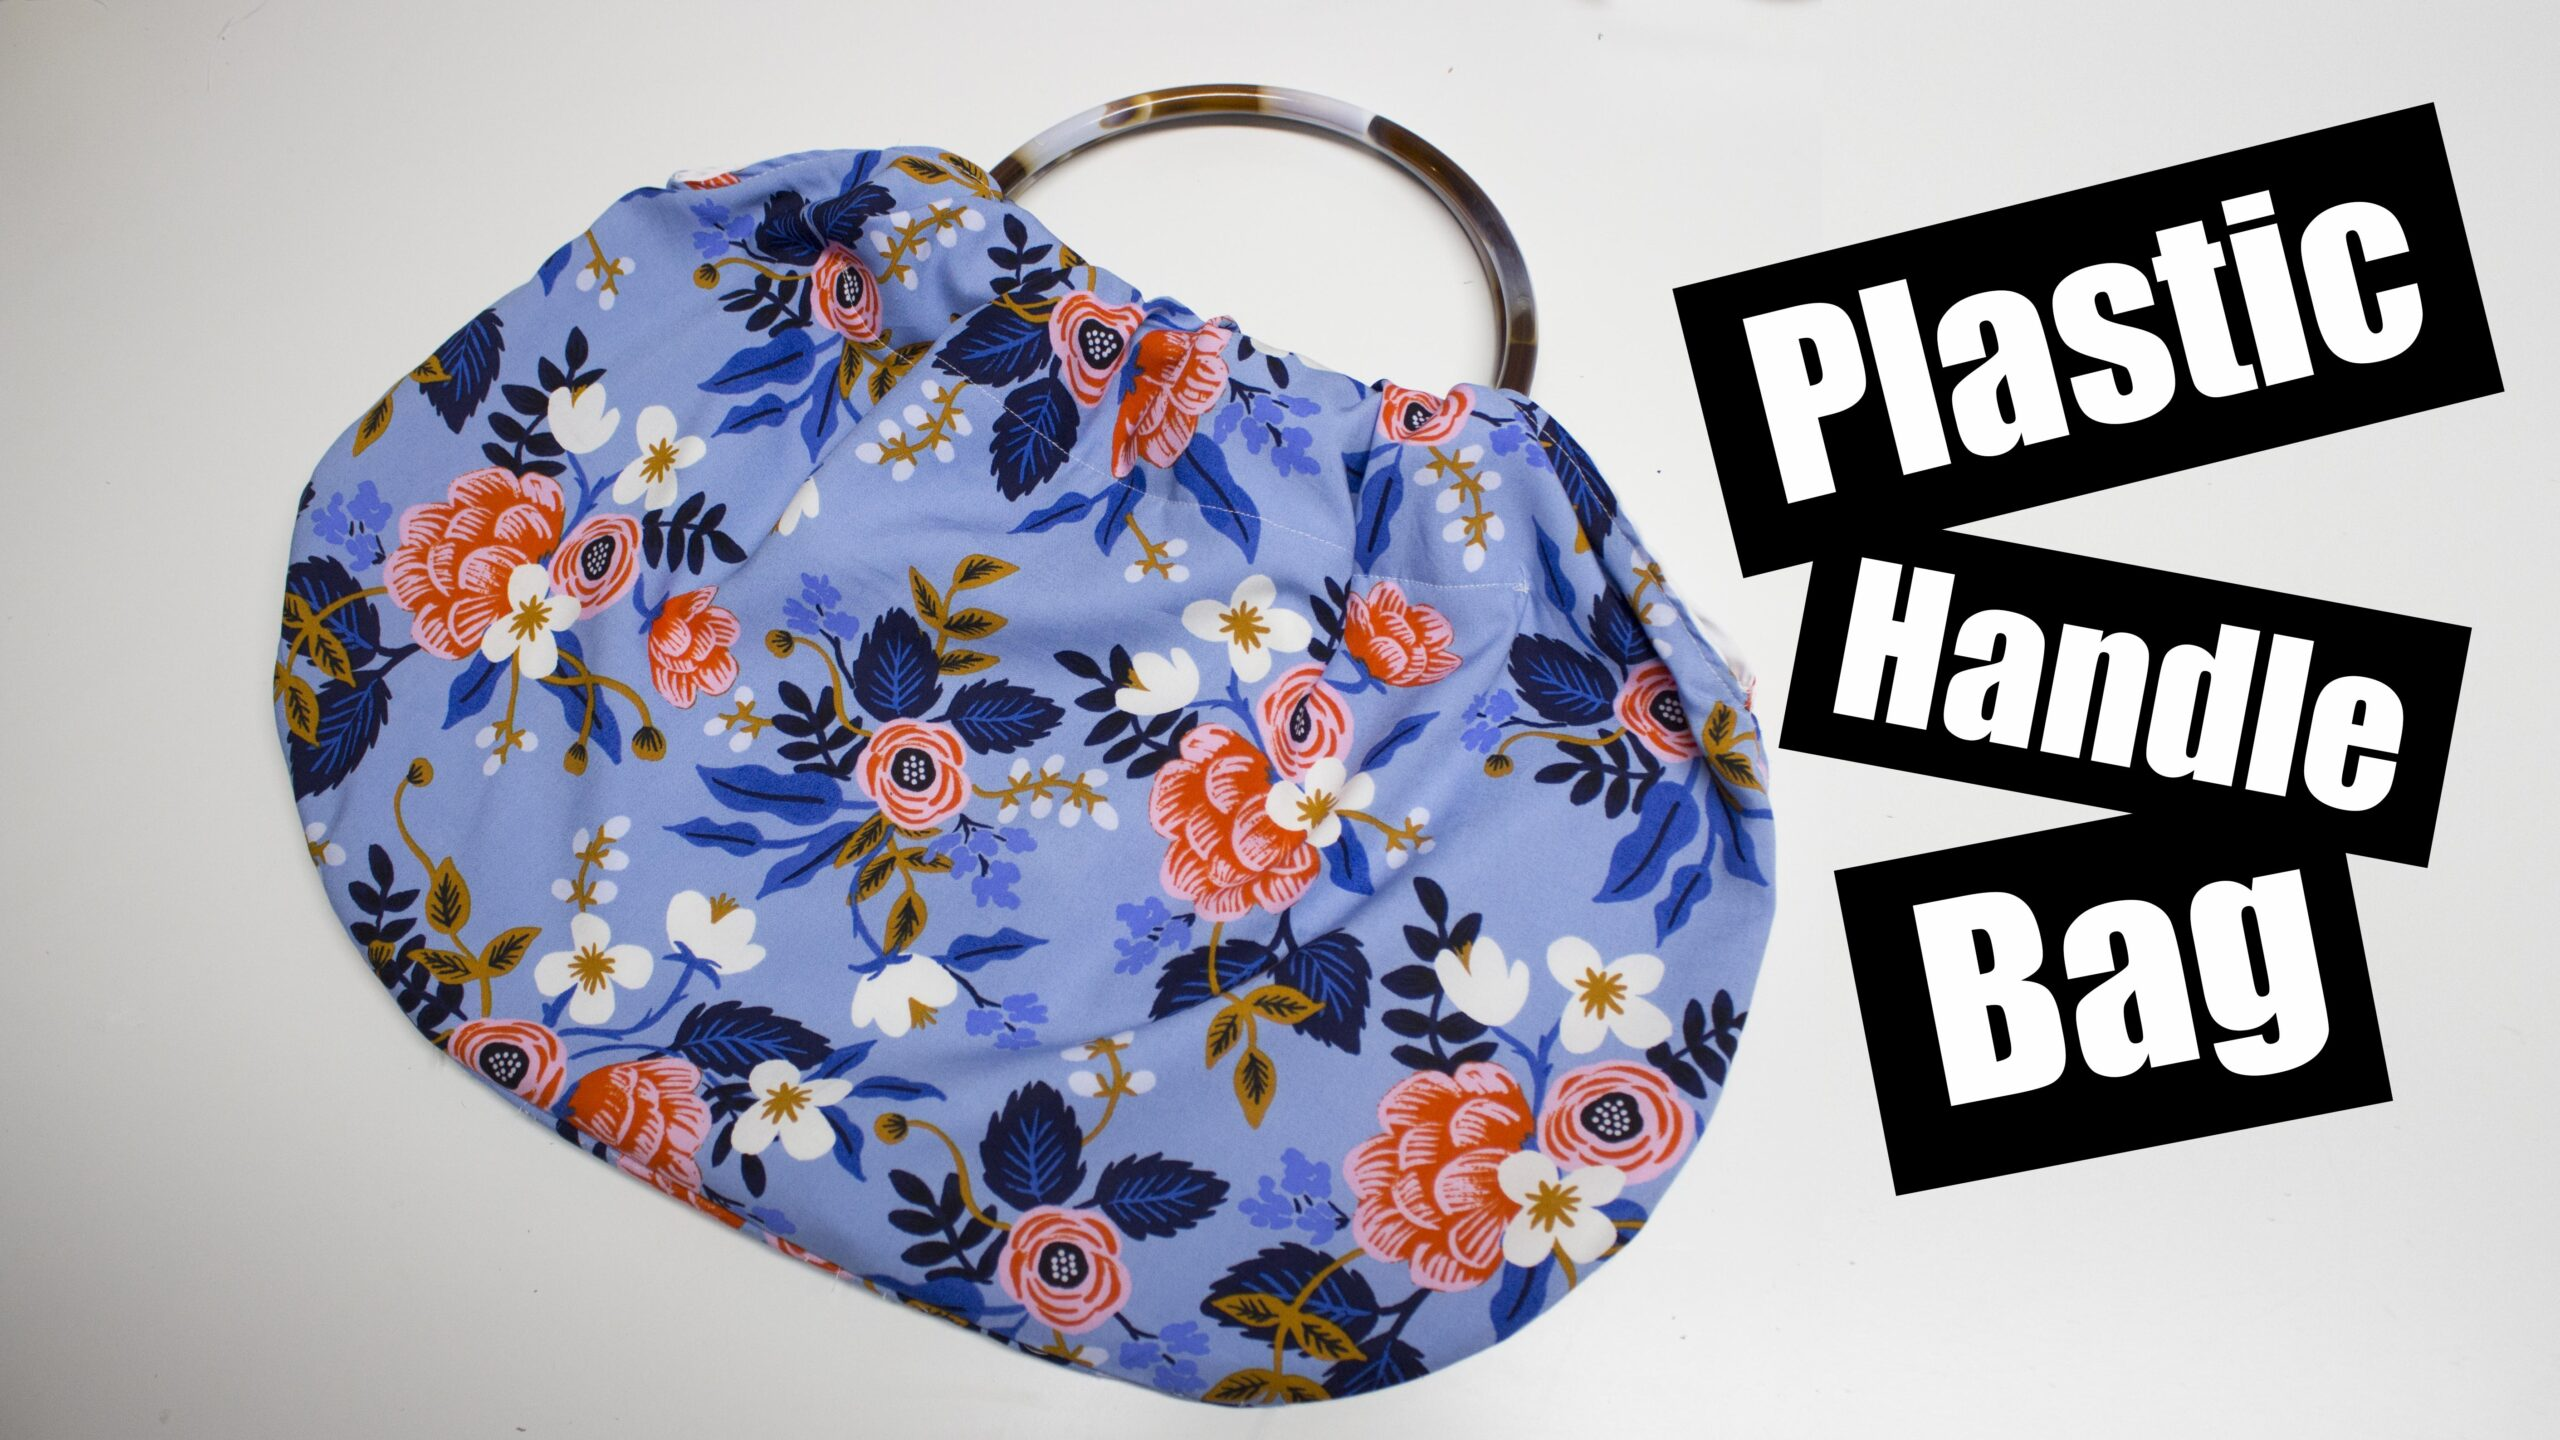 Plastic Handle purse tutorial